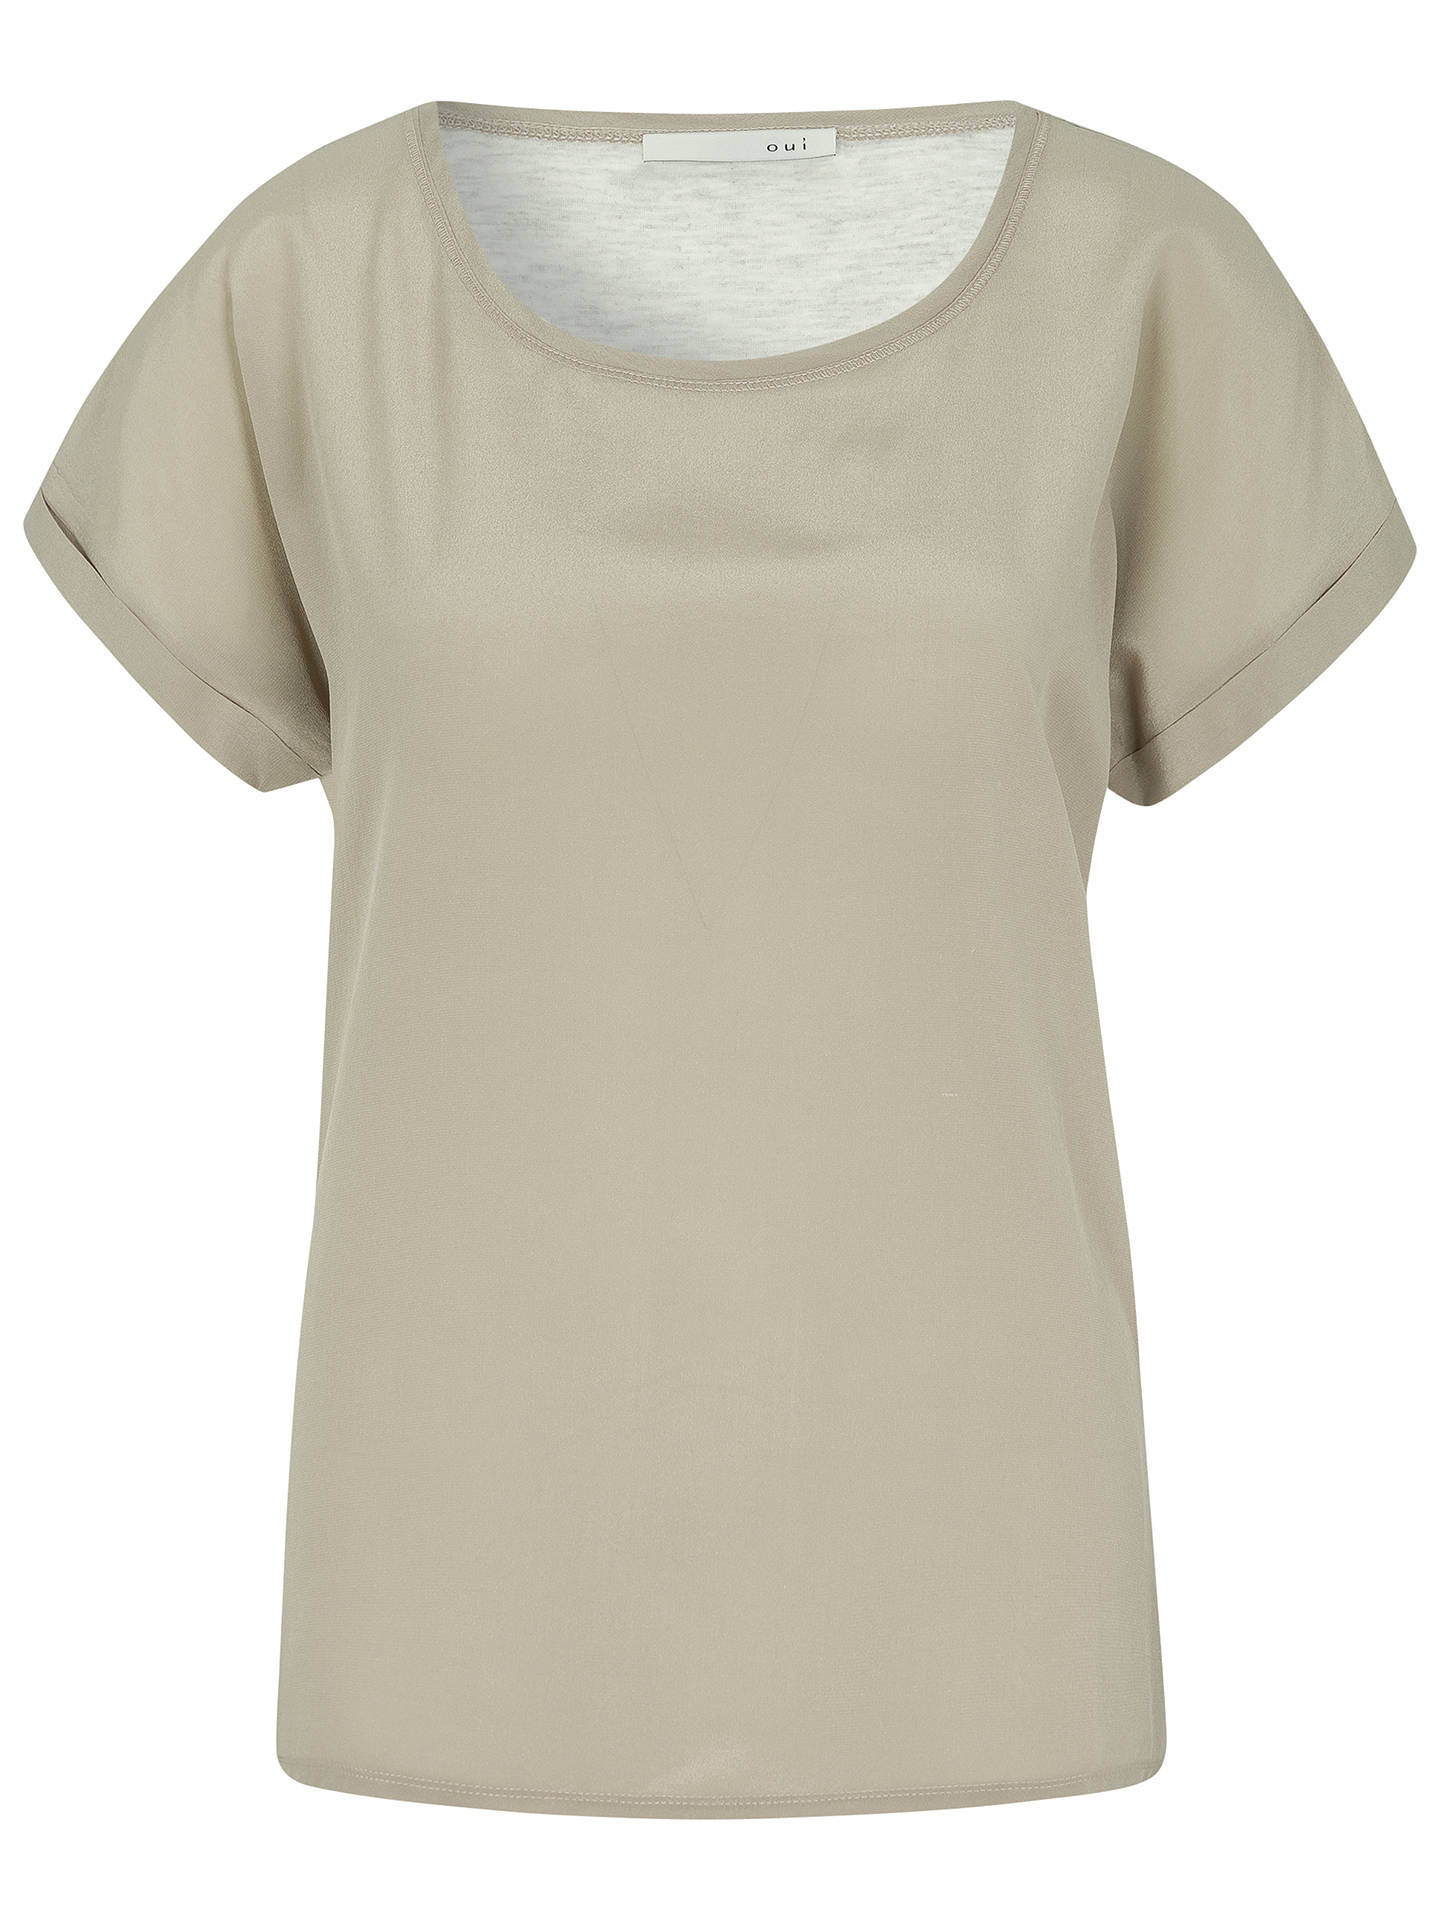 abe2263aa938 Oui Crepe Woven Front T-Shirt, Light Brown/Grey at John Lewis & Partners